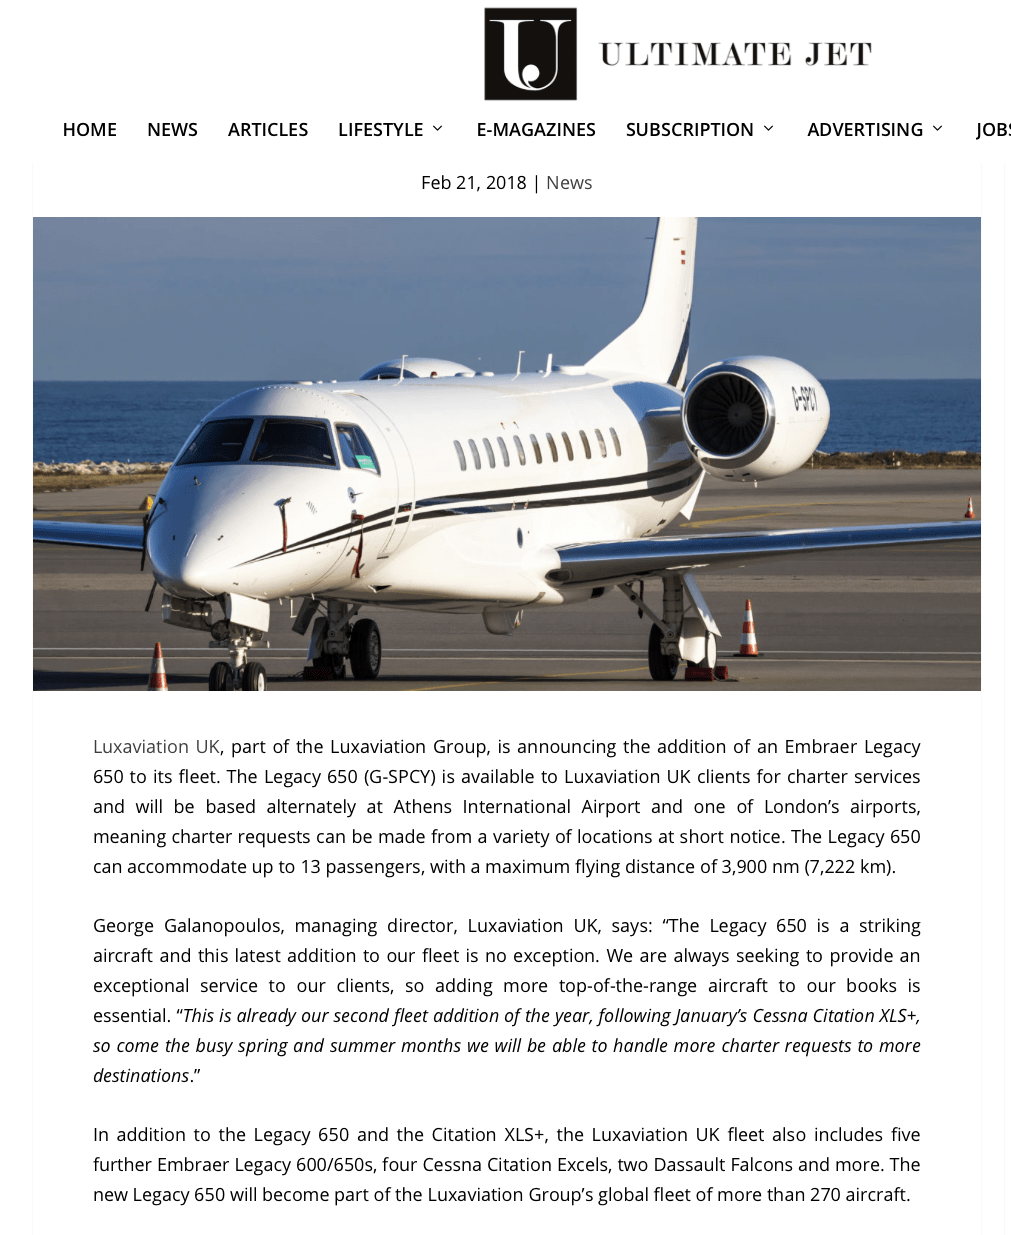 February 2018 - Ultimate Jet - LUXAVIATION UK ADDS EMBRAER LEGACY 650 TO FLEET